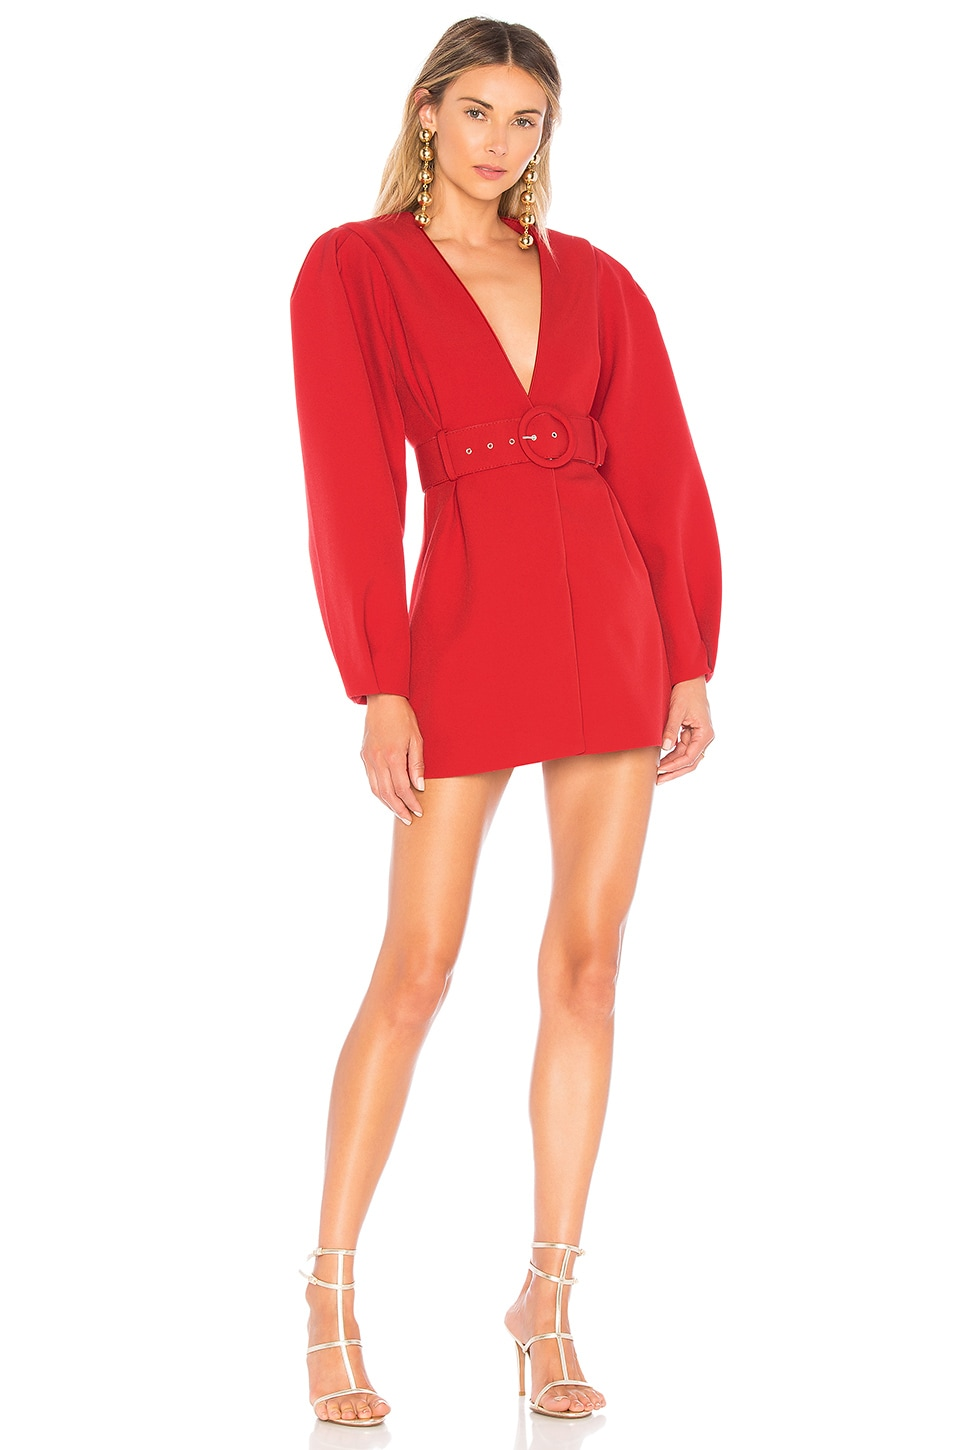 L'Academie The Ambre Dress in Scarlet Red